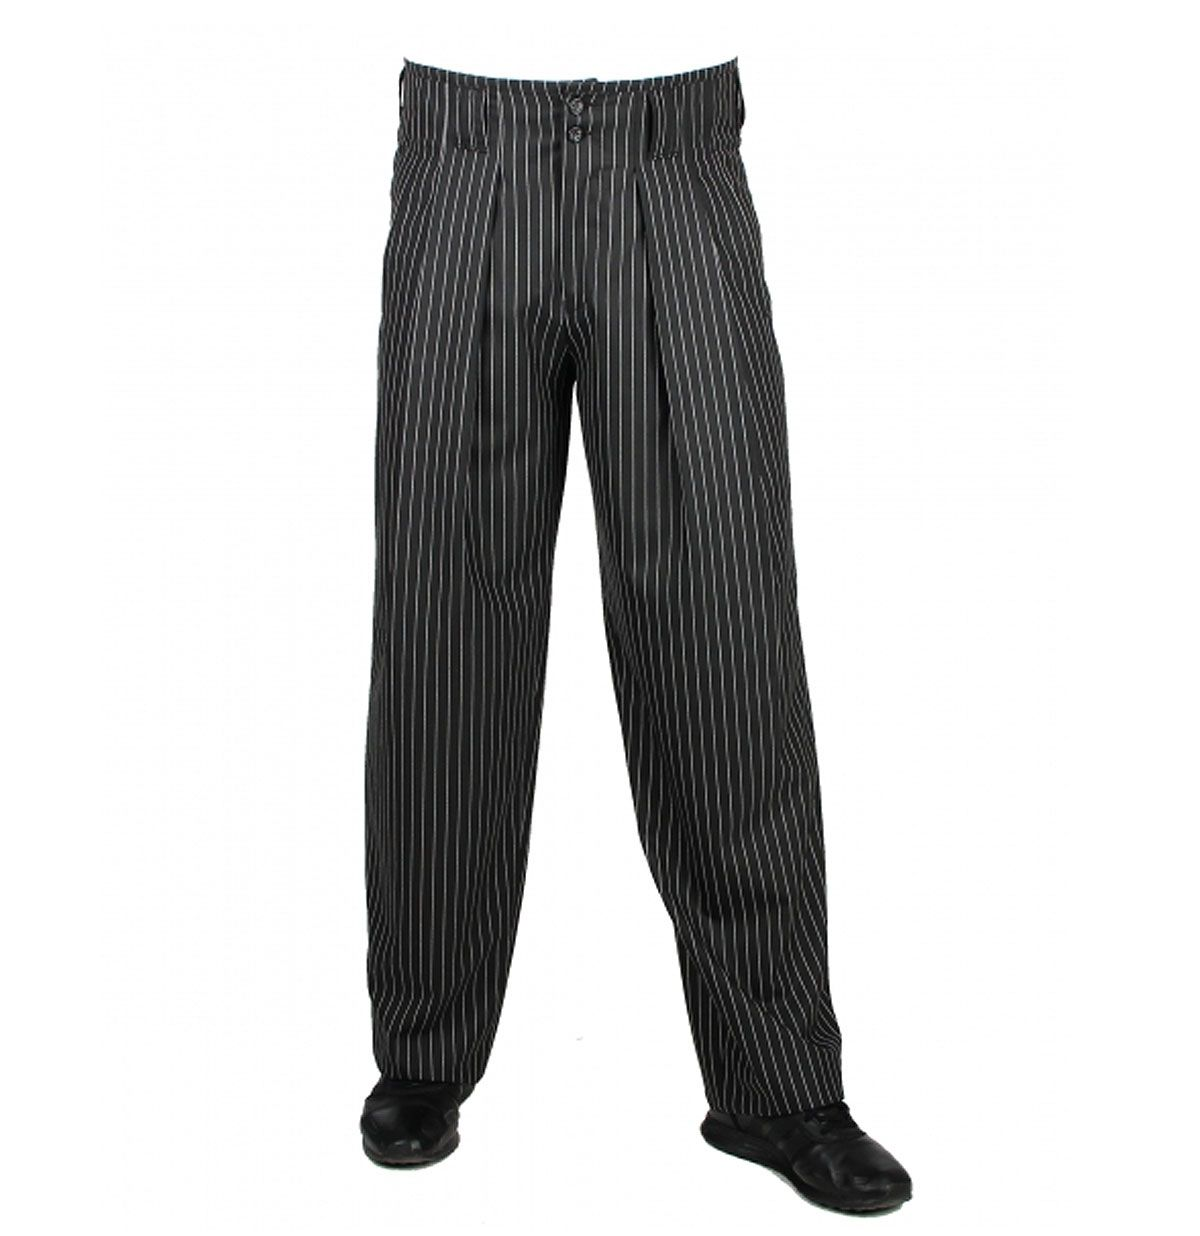 Men's Vintage Pants, Trousers, Jeans, Overalls 40s Boogie Swing Pants Striped Wide Black / White £95.00 AT vintagedancer.com